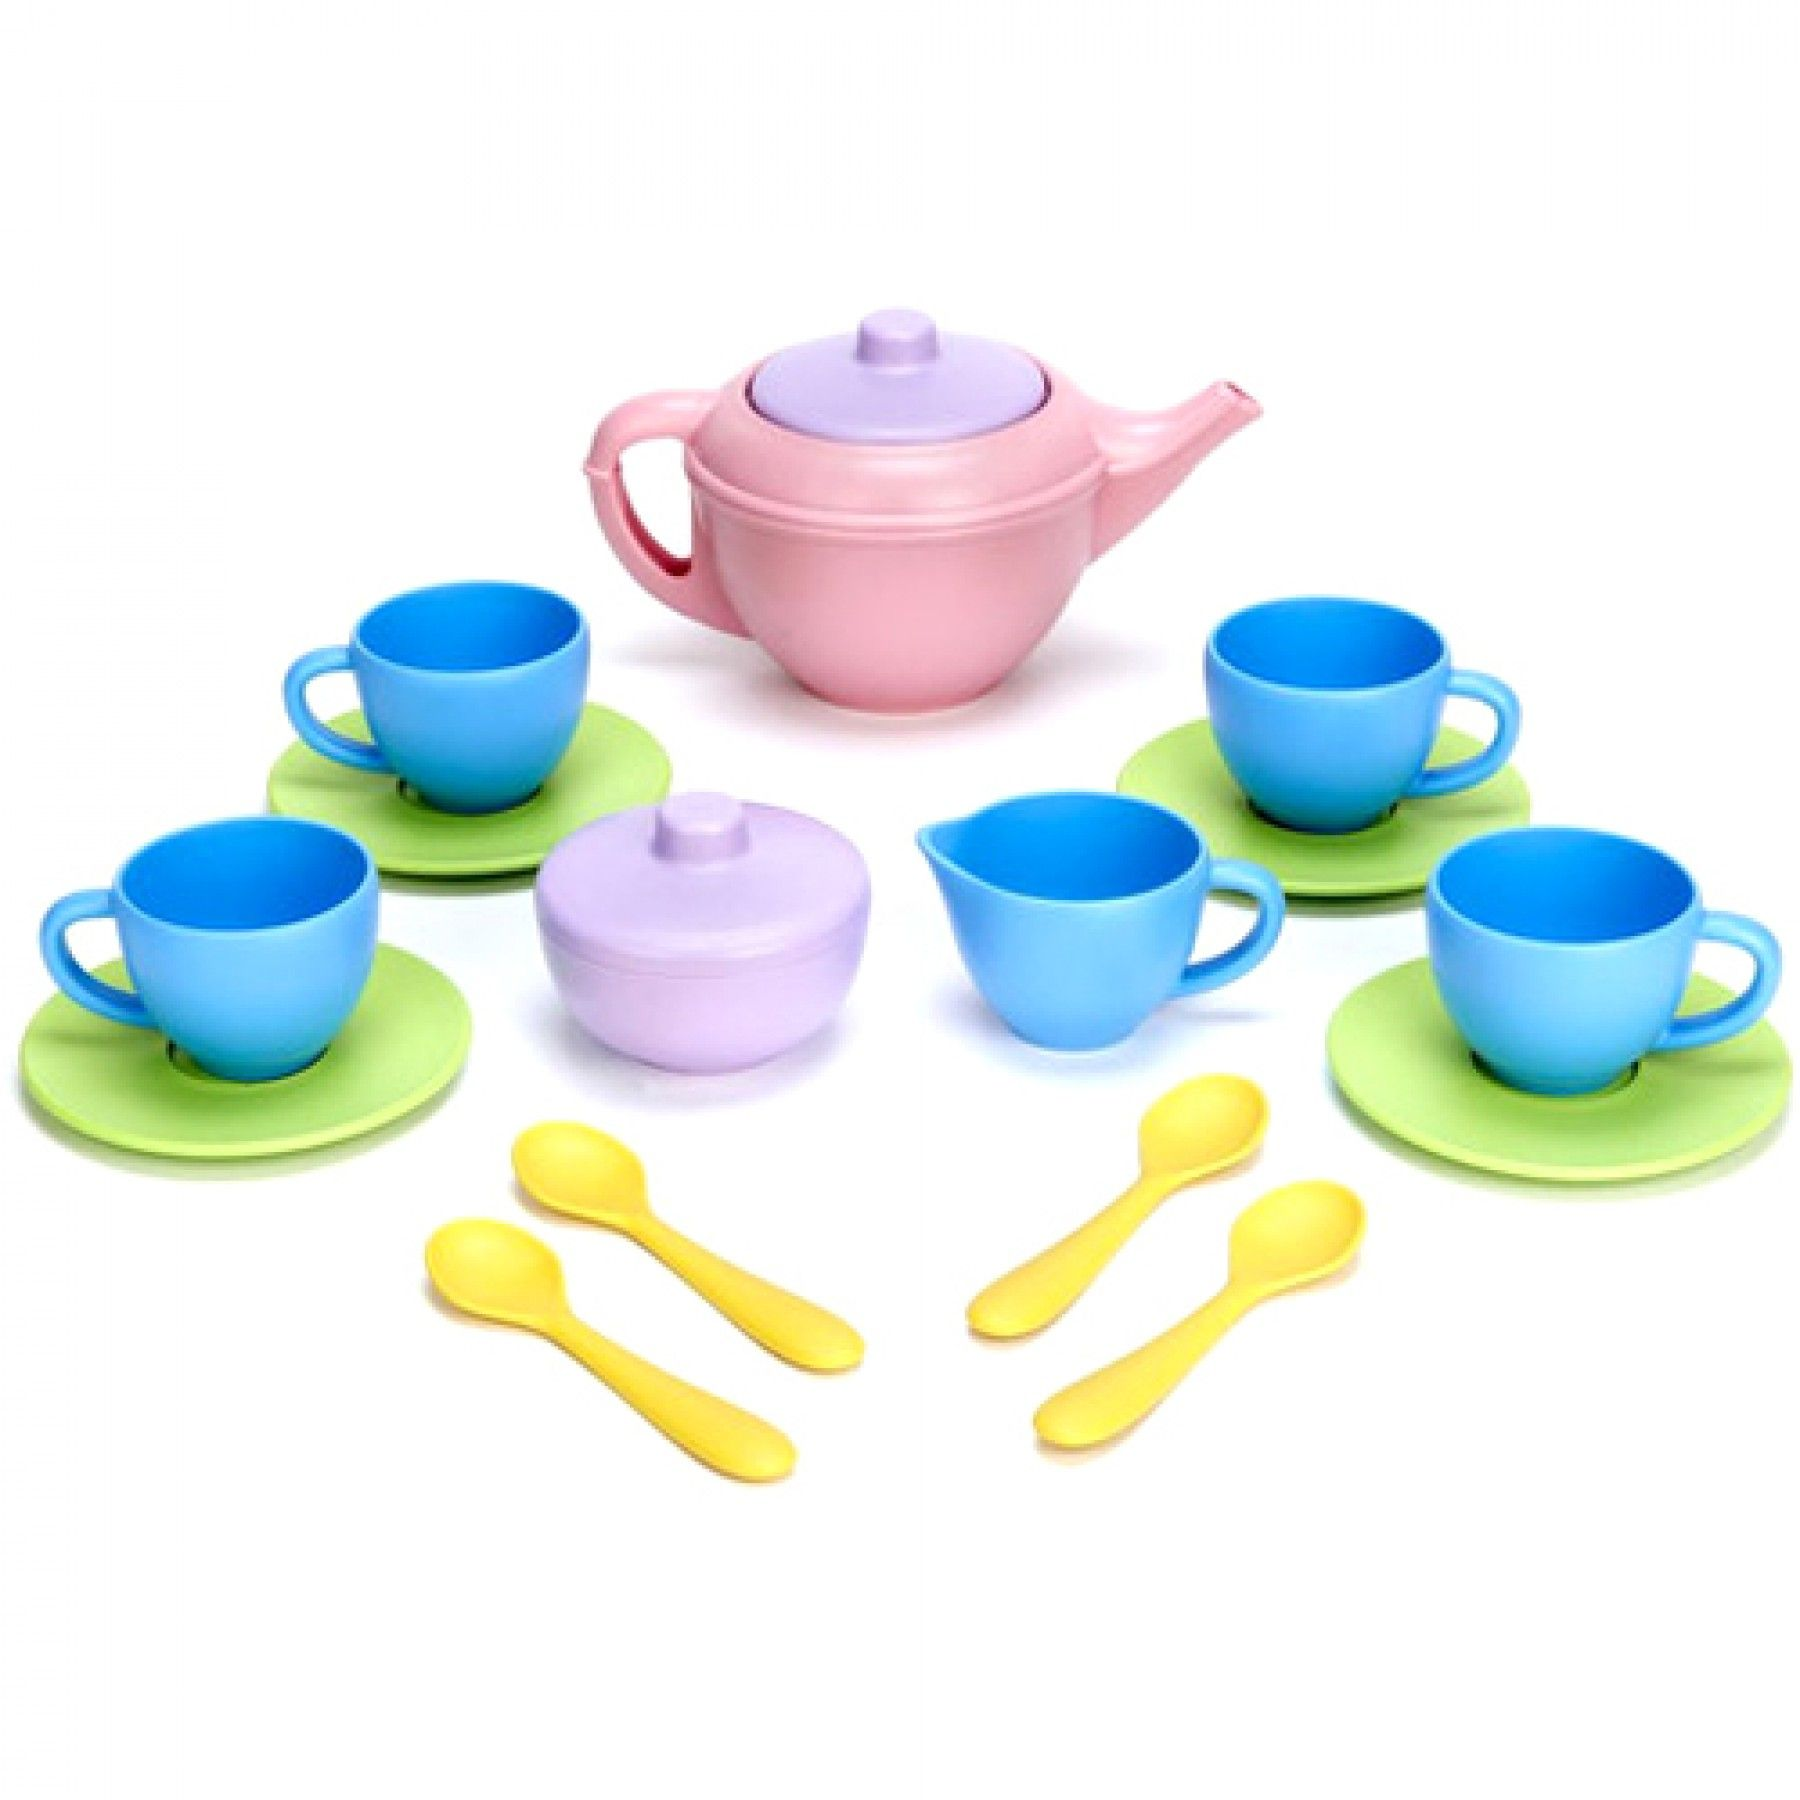 green toys theeservies blauw 17-delig - gerecycled | ilovespeelgoed.nl